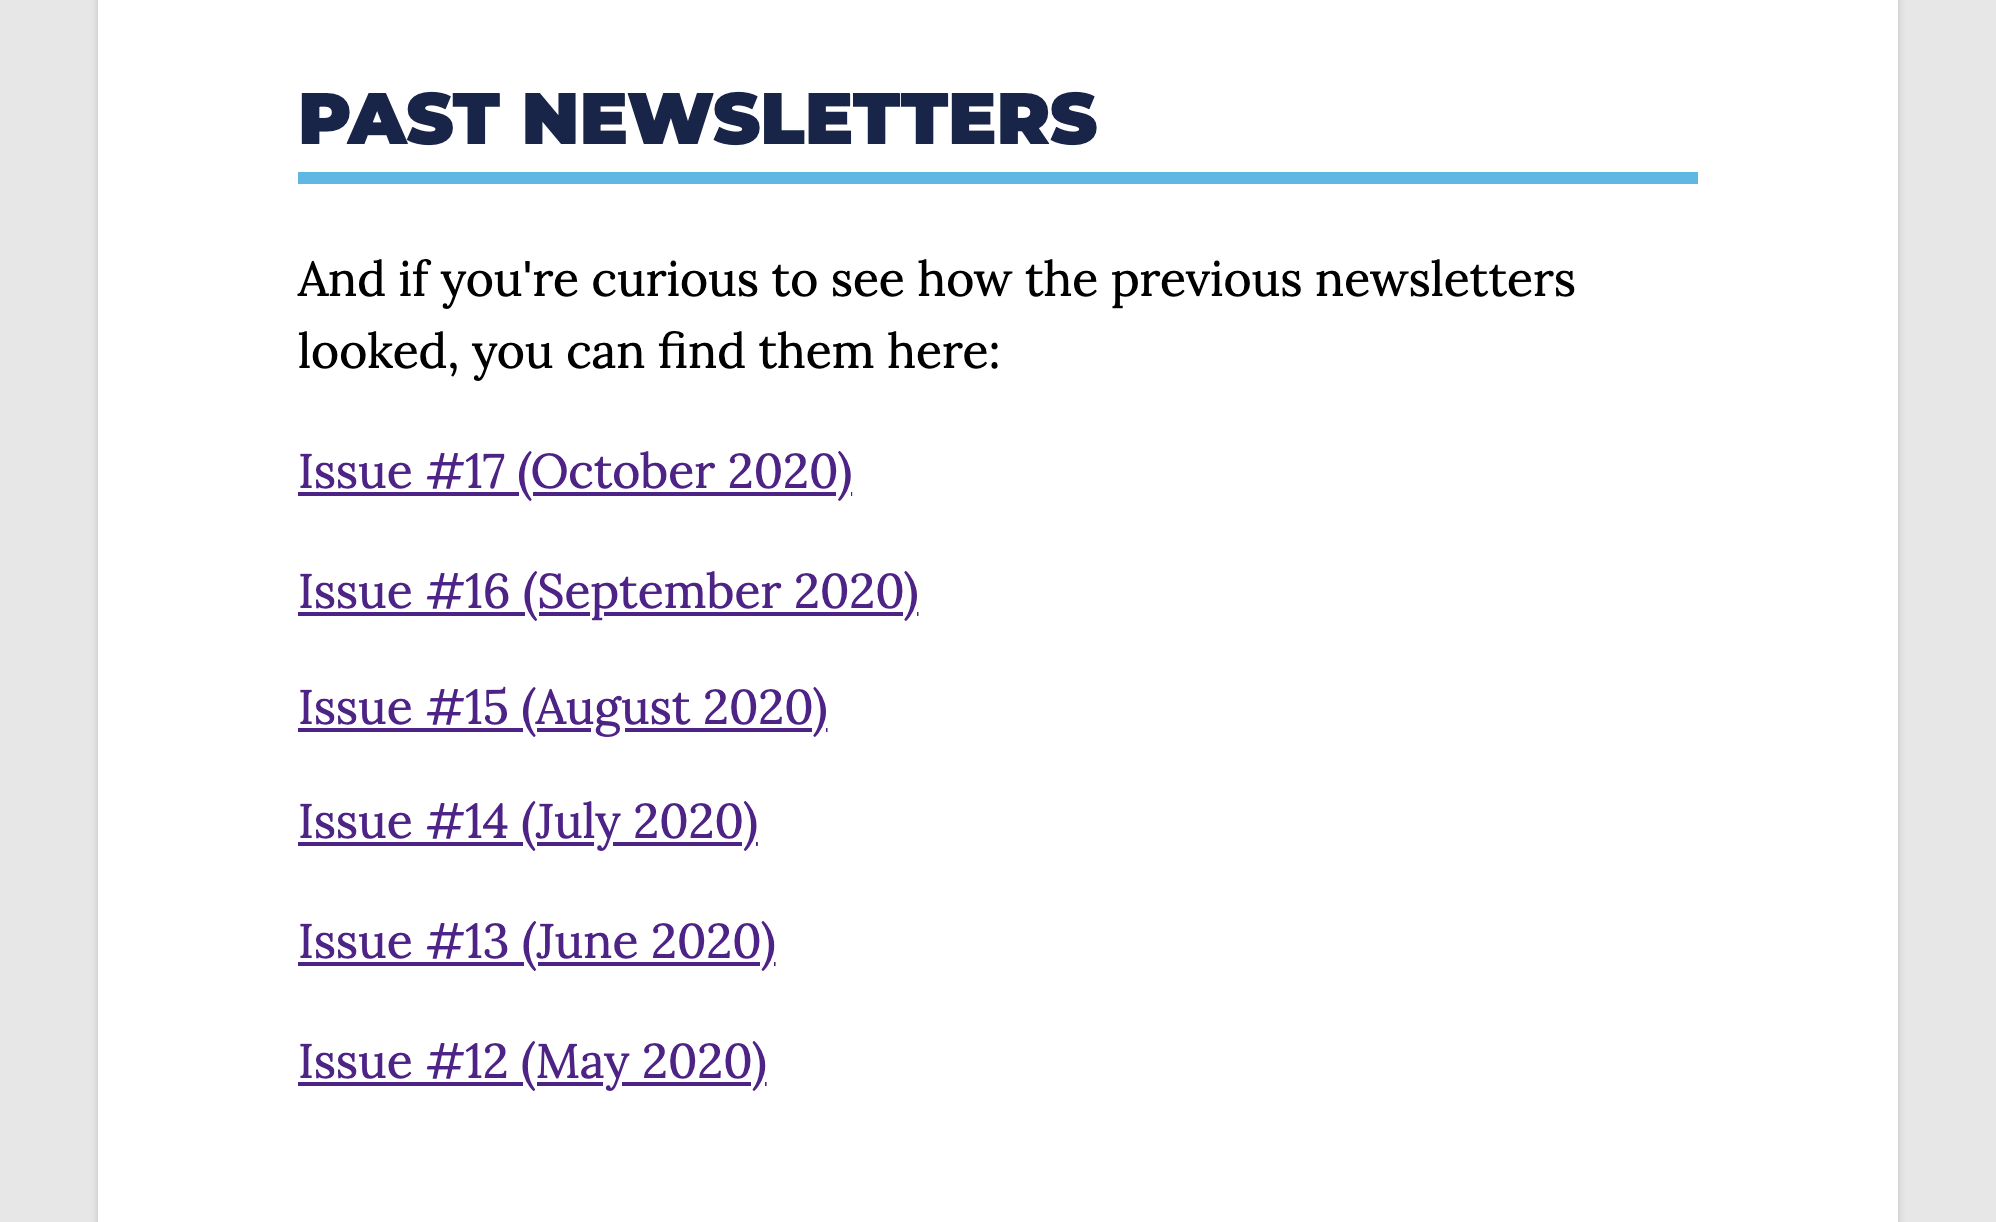 Past Issues Newsletter